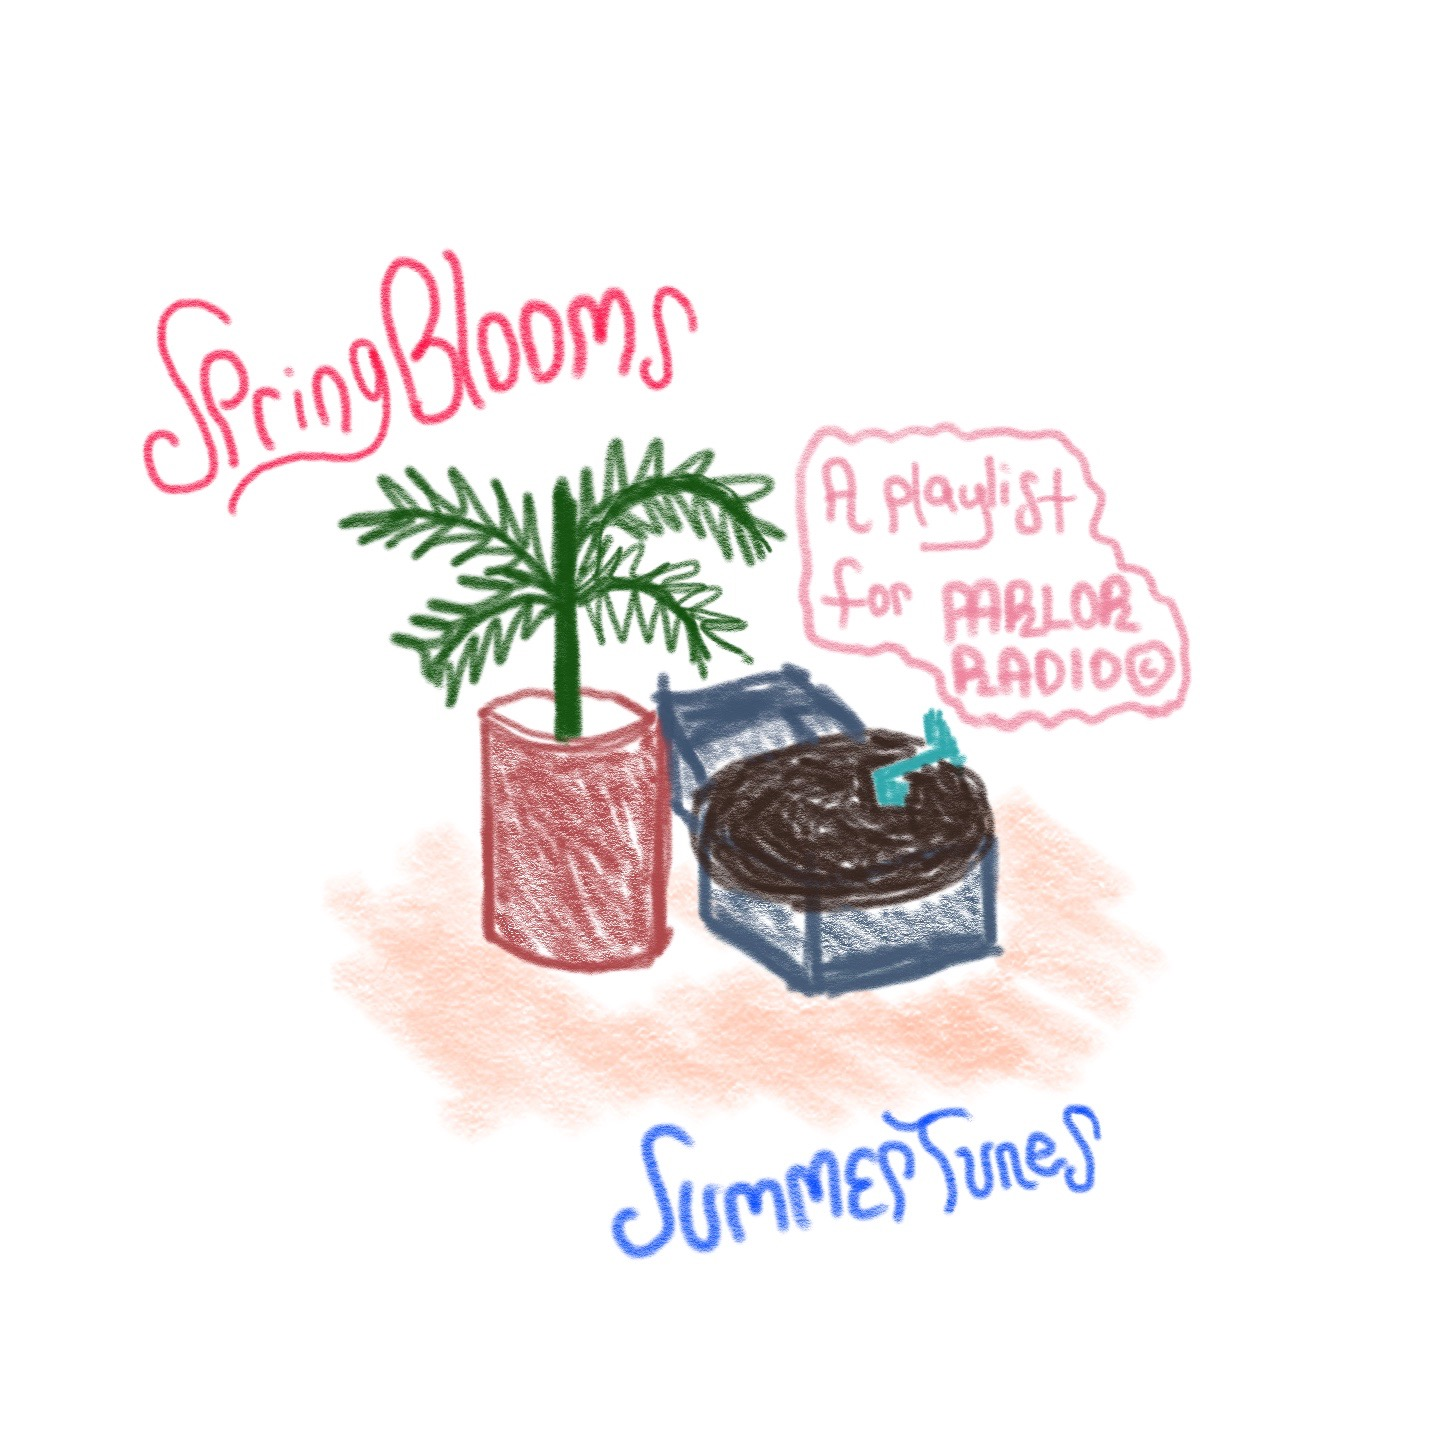 Spring Blooms, Summer TUNES - A PLAYLIST BY BRIGGS LALOR FOR parlorRADIO